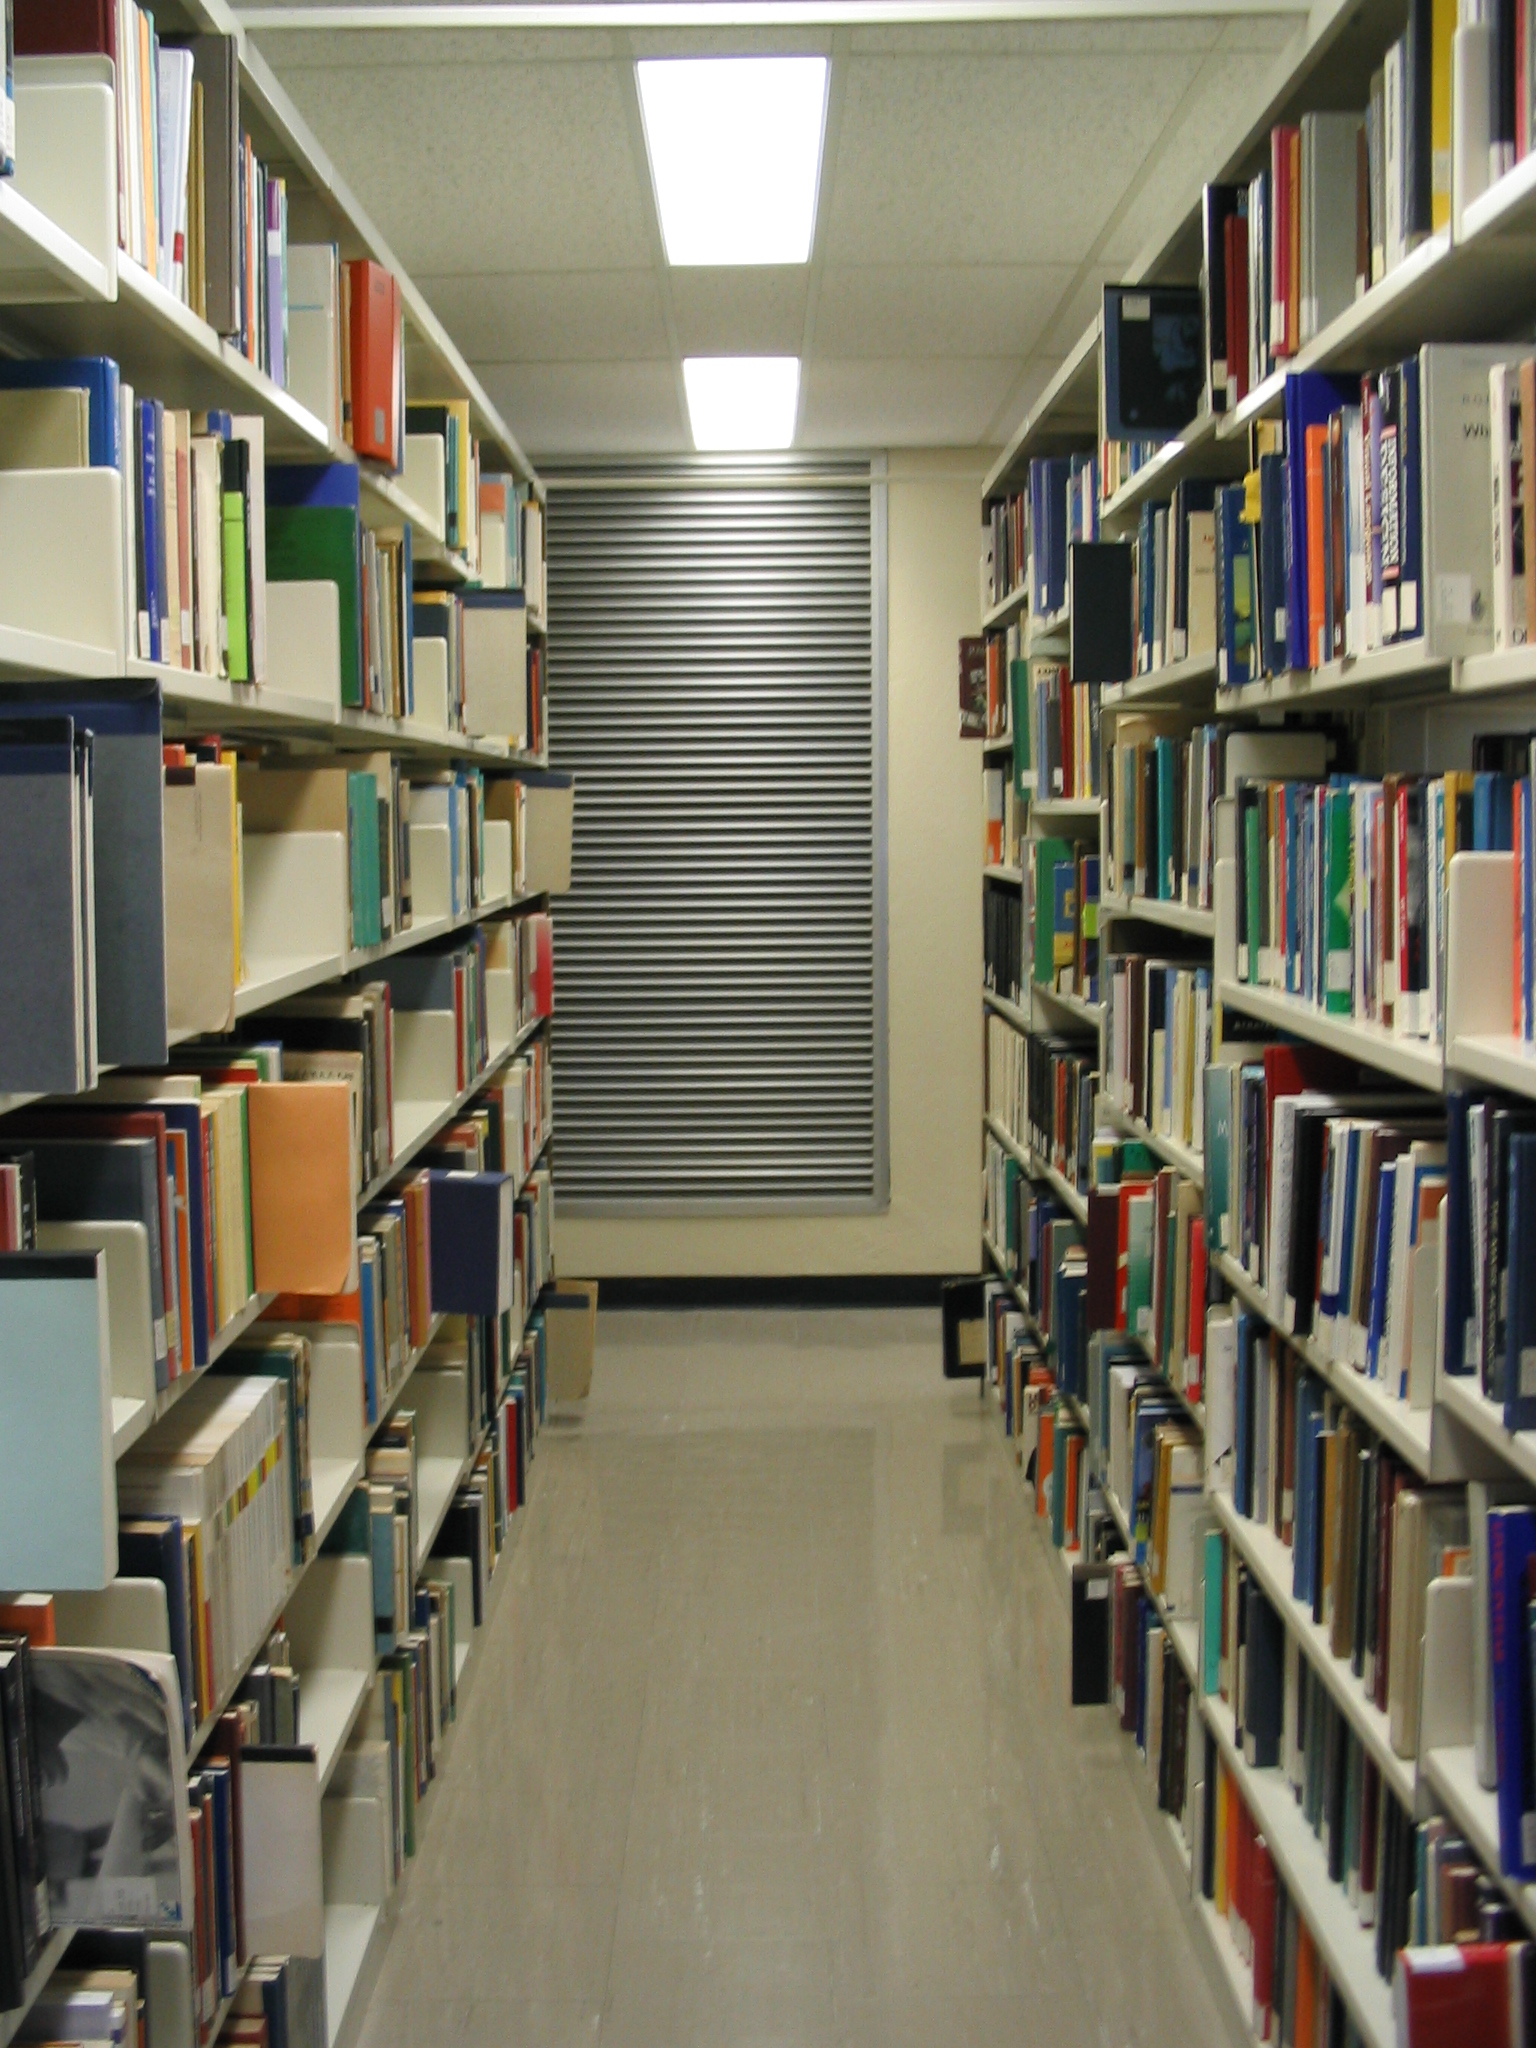 A row of books in the Dana Porter Library